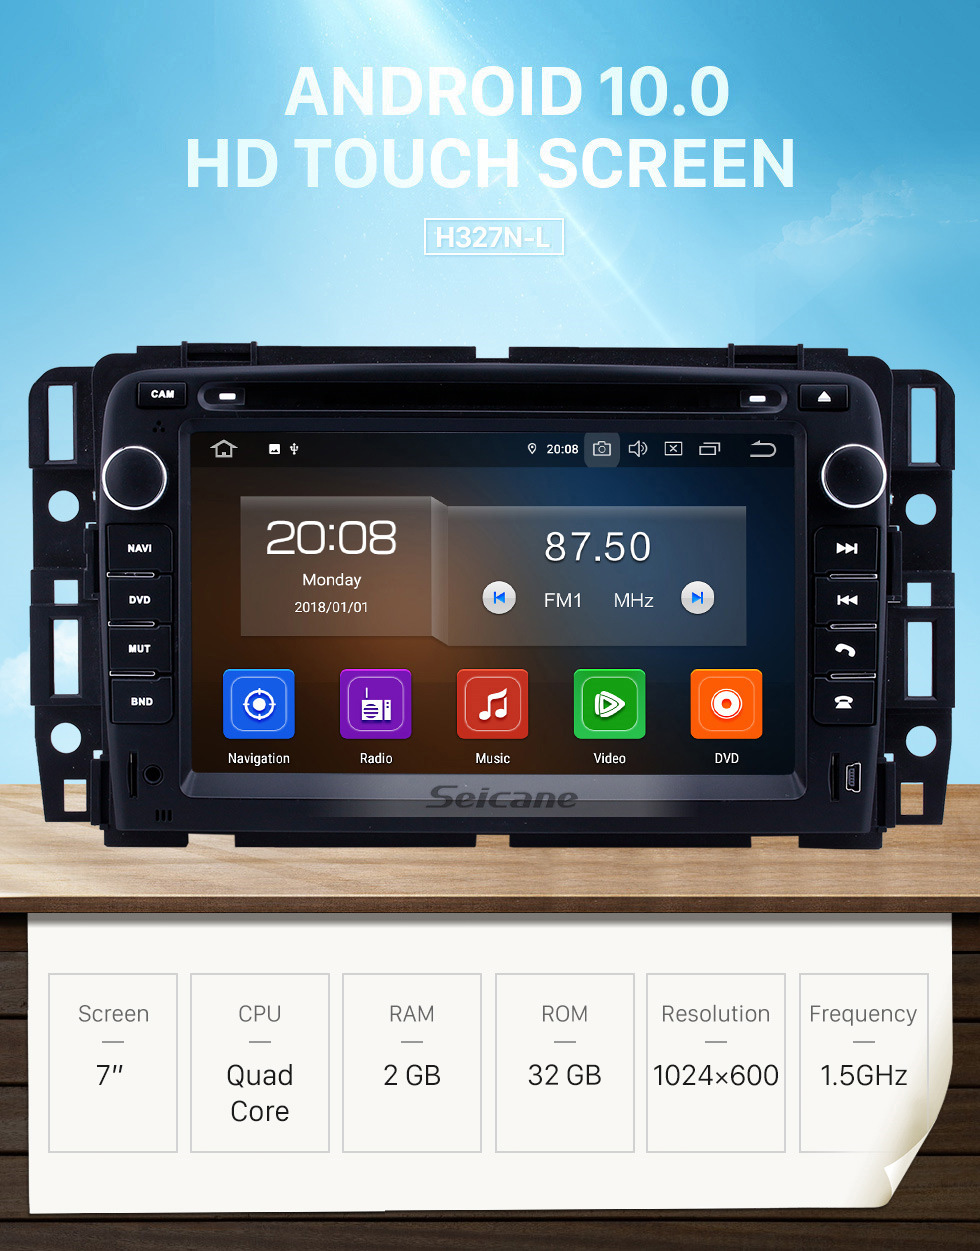 Seicane 2 Din Android 10.0 Radio Head Unit for 2009 2010 2011 GMC Chevy Chevrolet Express VAN Traverse with HD 1024*600 touchscreen GPS Sat Nav DVD Player Audio System WiFi Bluetooth Mirror Link 1080P Video